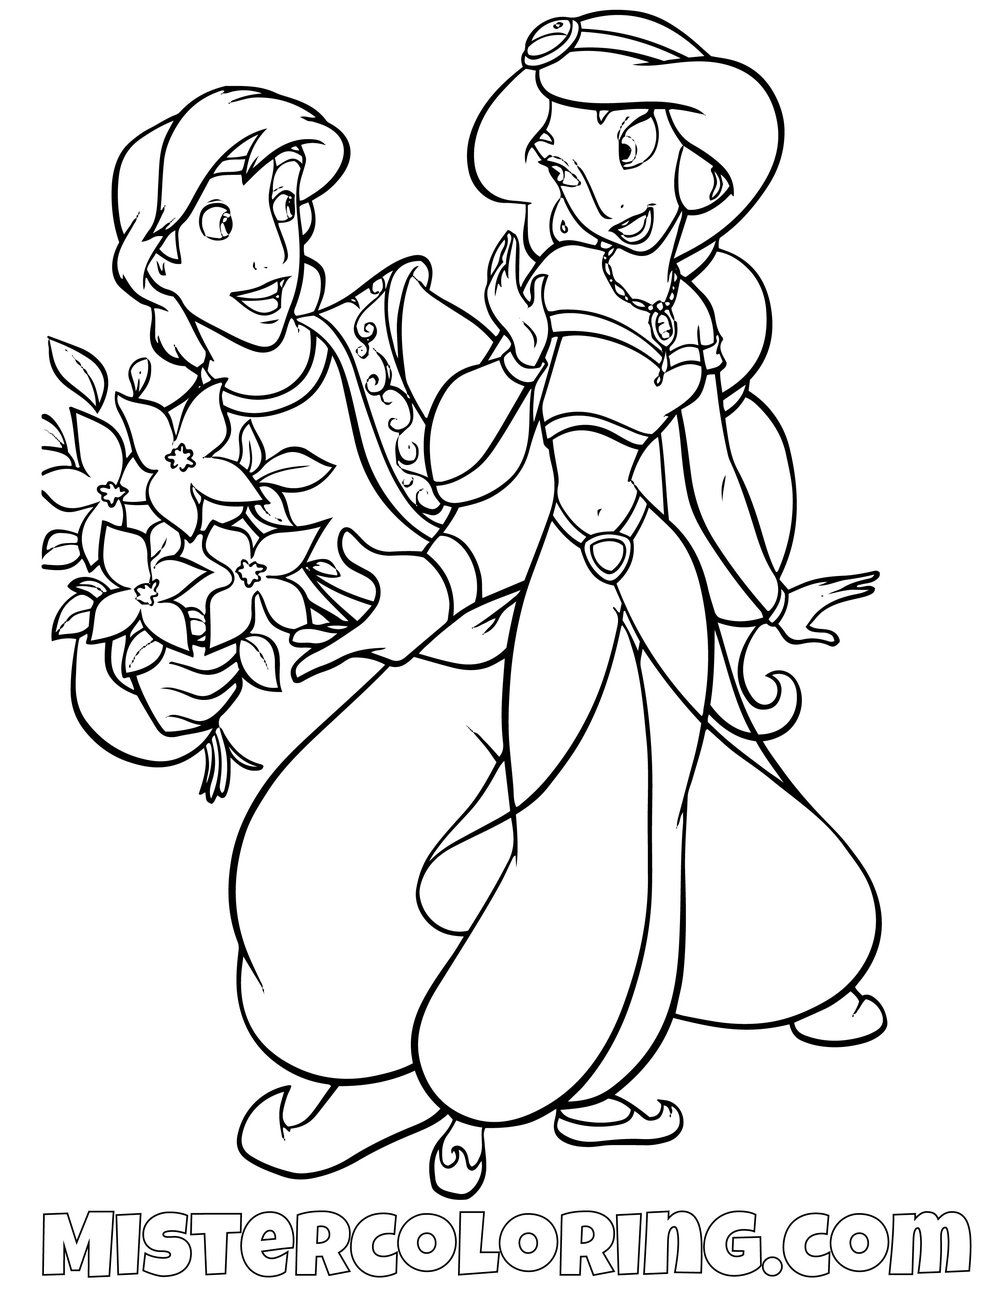 Aladdin Offering Princess Jasmine Flowers Aladdin Coloring Page Mermaid Coloring Pages Princess Coloring Pages Coloring Pages